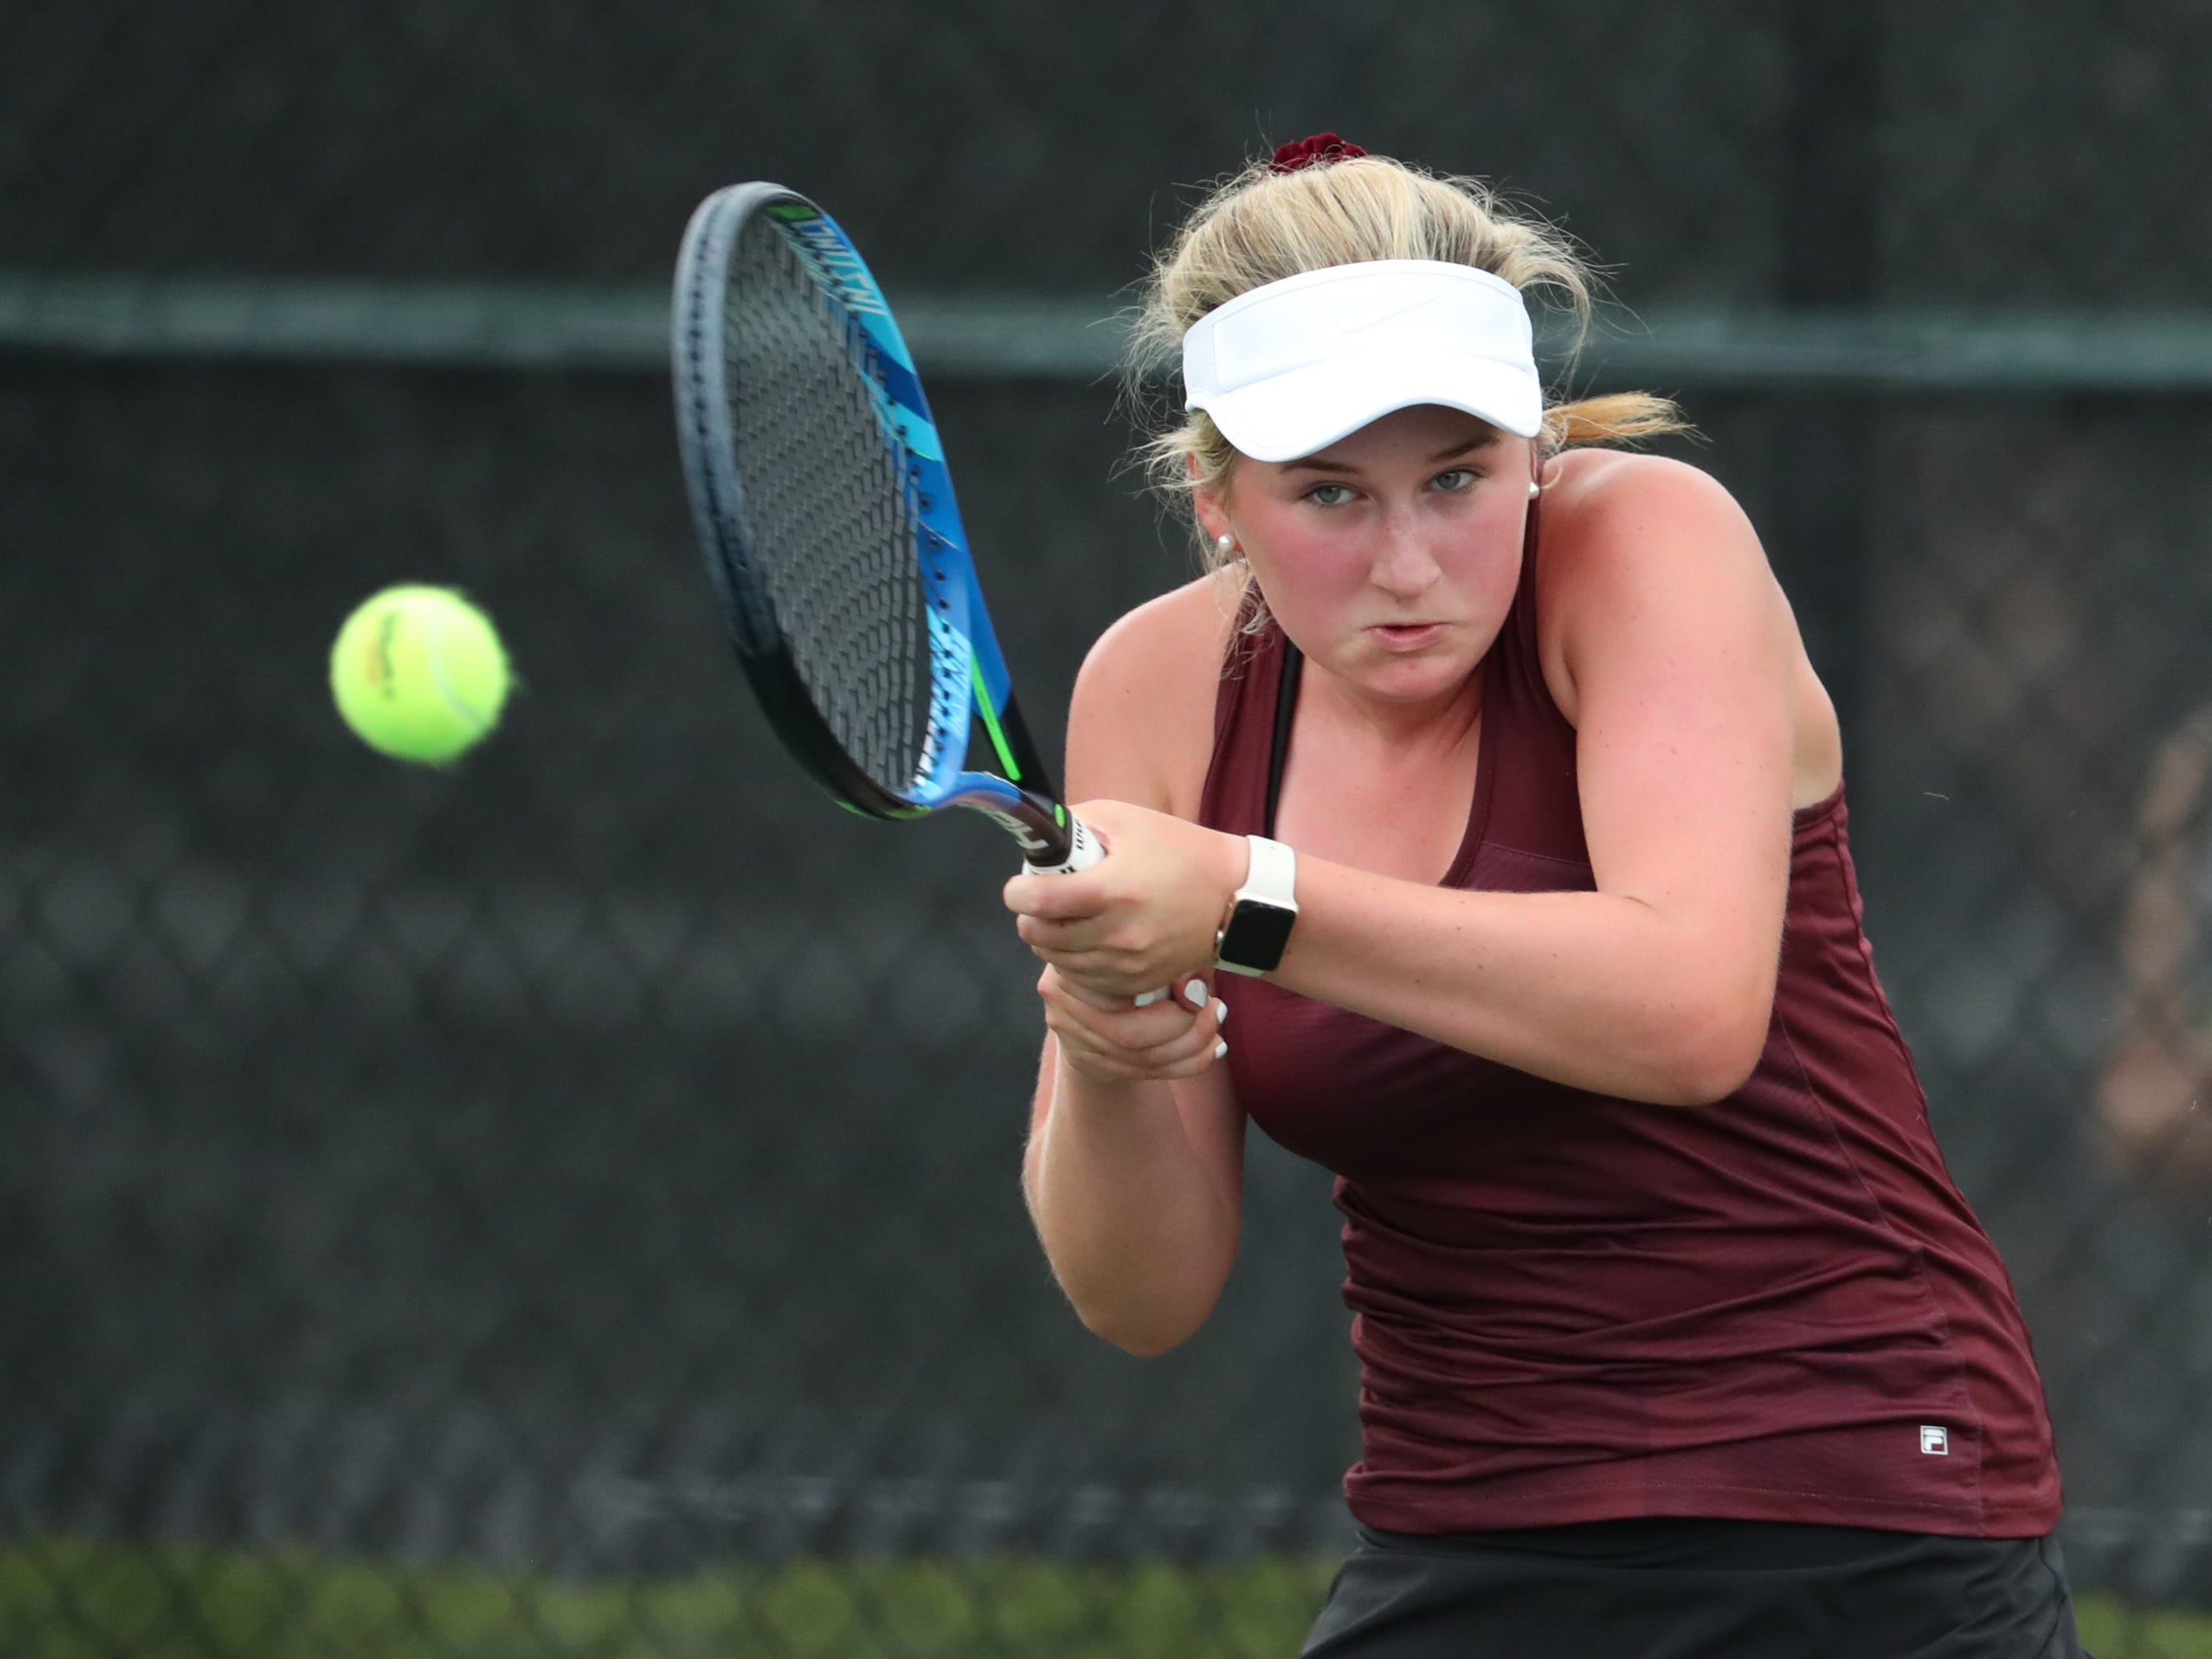 Dobyns Bennett's Willa Rogers returns the ball against Brentwood's Somer Henry during the first round of the 2018 Large Class State Girls Team Tennis during Spring Fling on Tuesday, May 22, 2018, at the Adams Tennis Complex, in Murfreesboro.